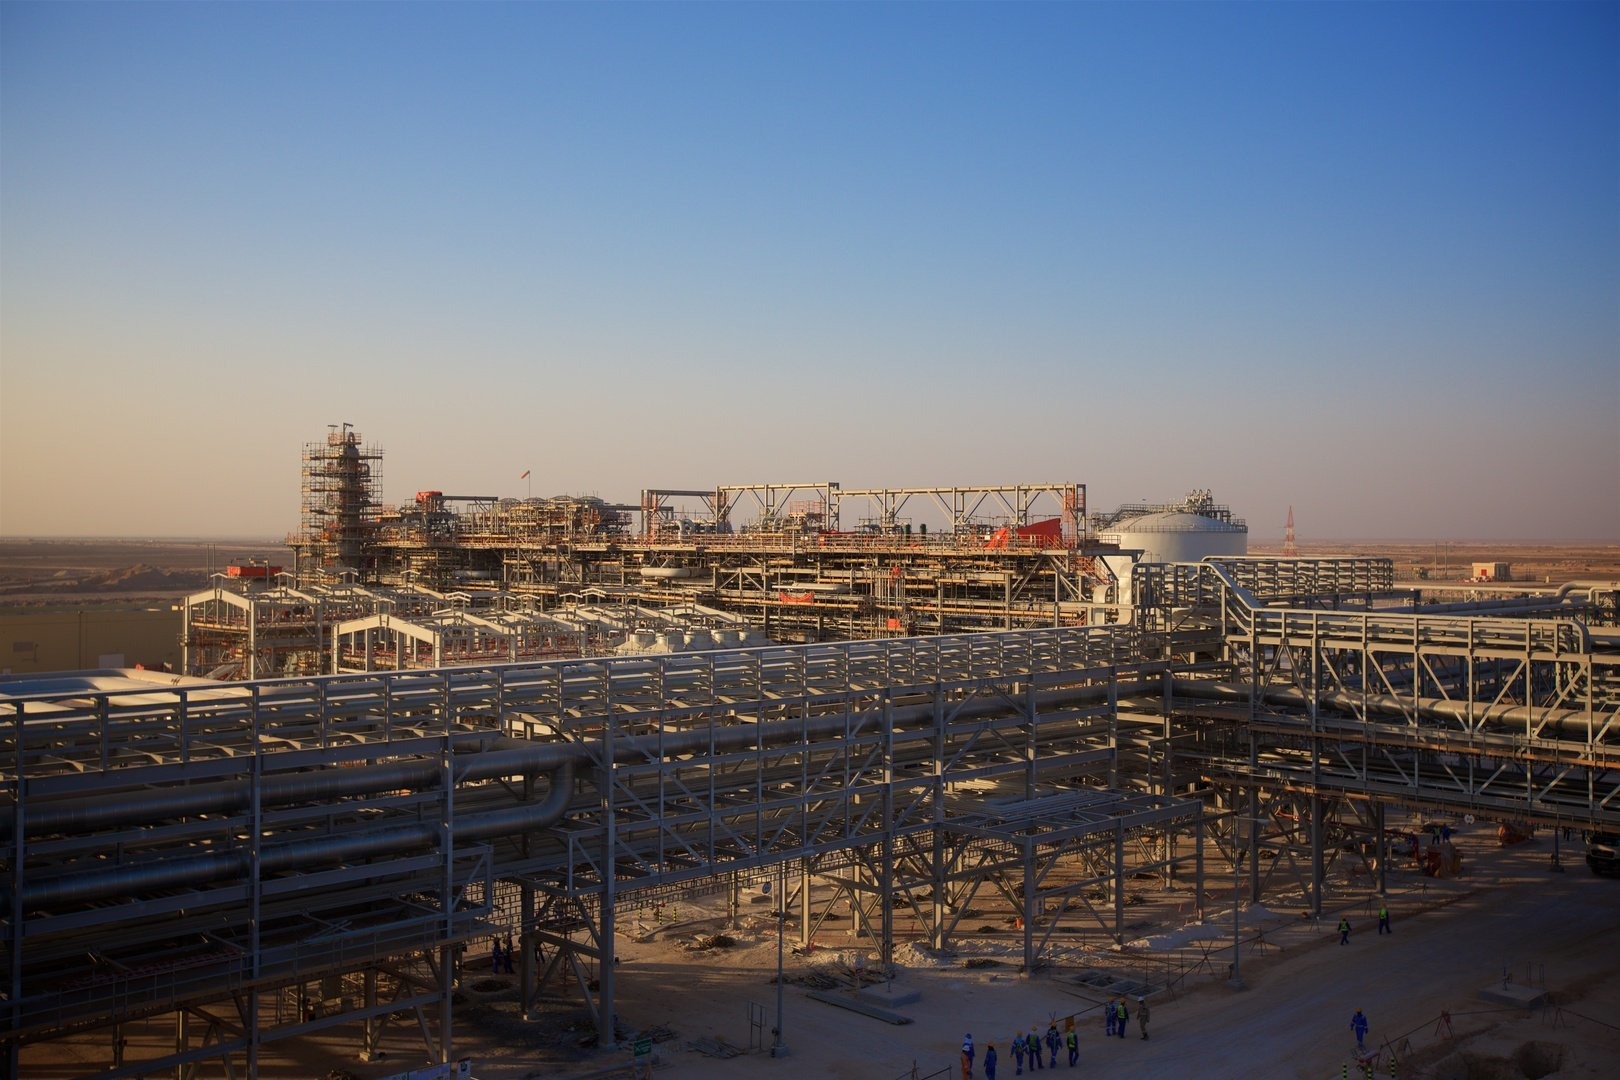 Infrastructure supporting the Khazzan oilfield development